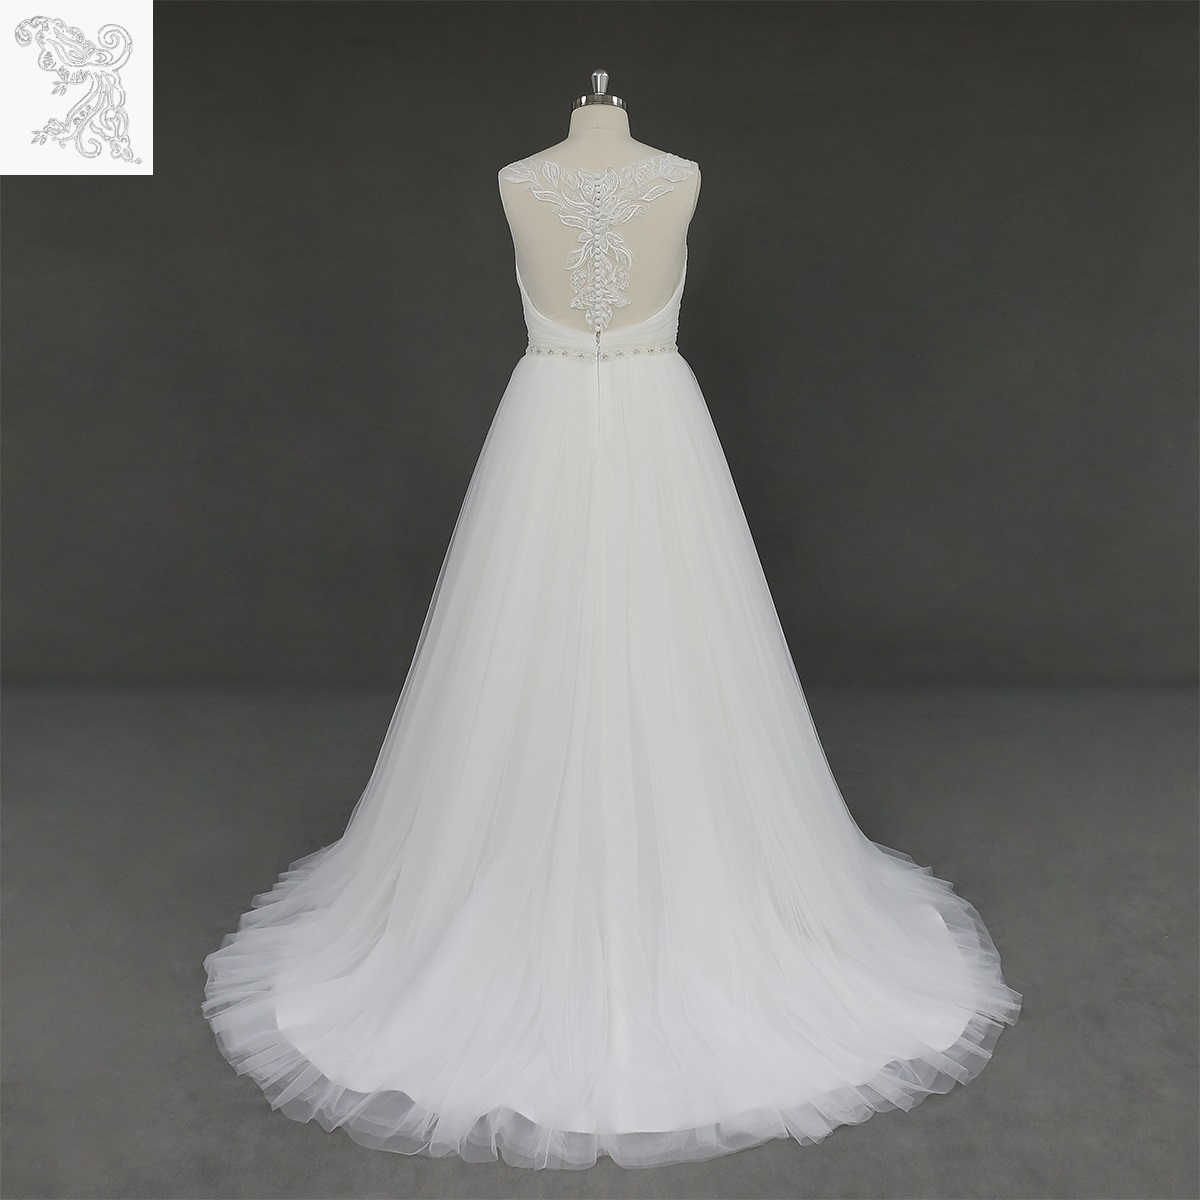 2021 Lace Wedding Dress Philippe Apat